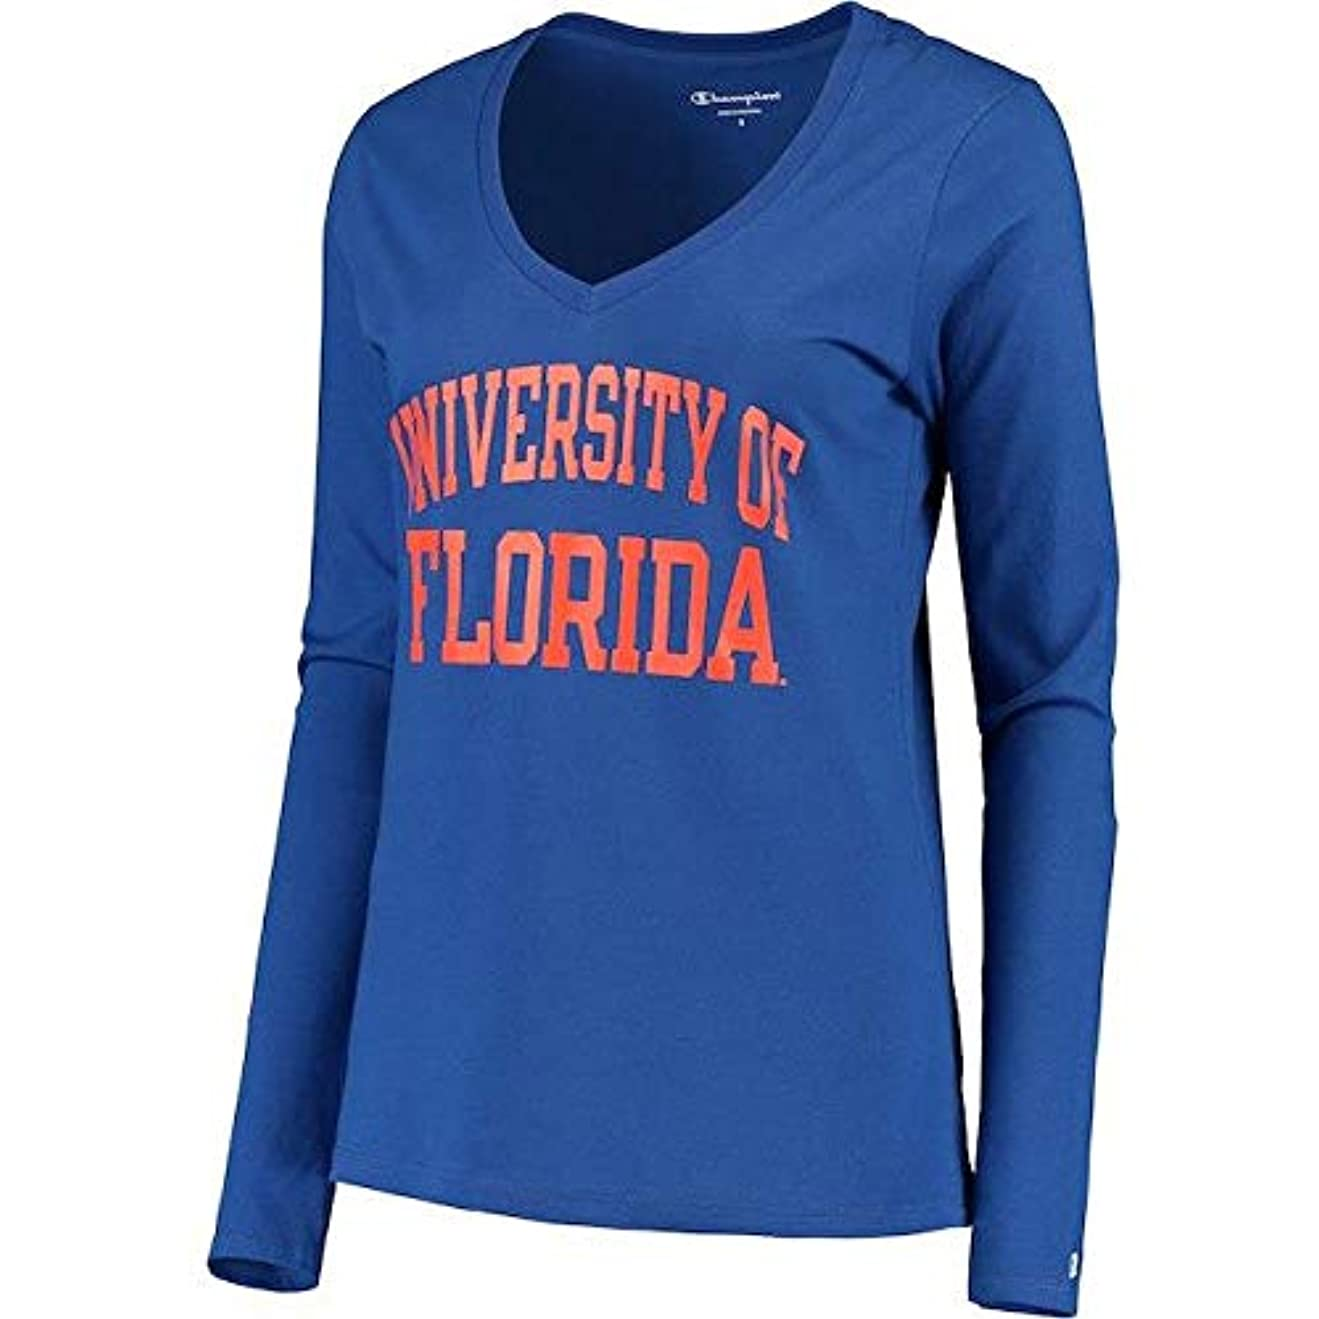 負勇気シャーChampion Champion Florida Gators Women's Royal University Long Sleeve V-Neck T-Shirt スポーツ用品 【並行輸入品】